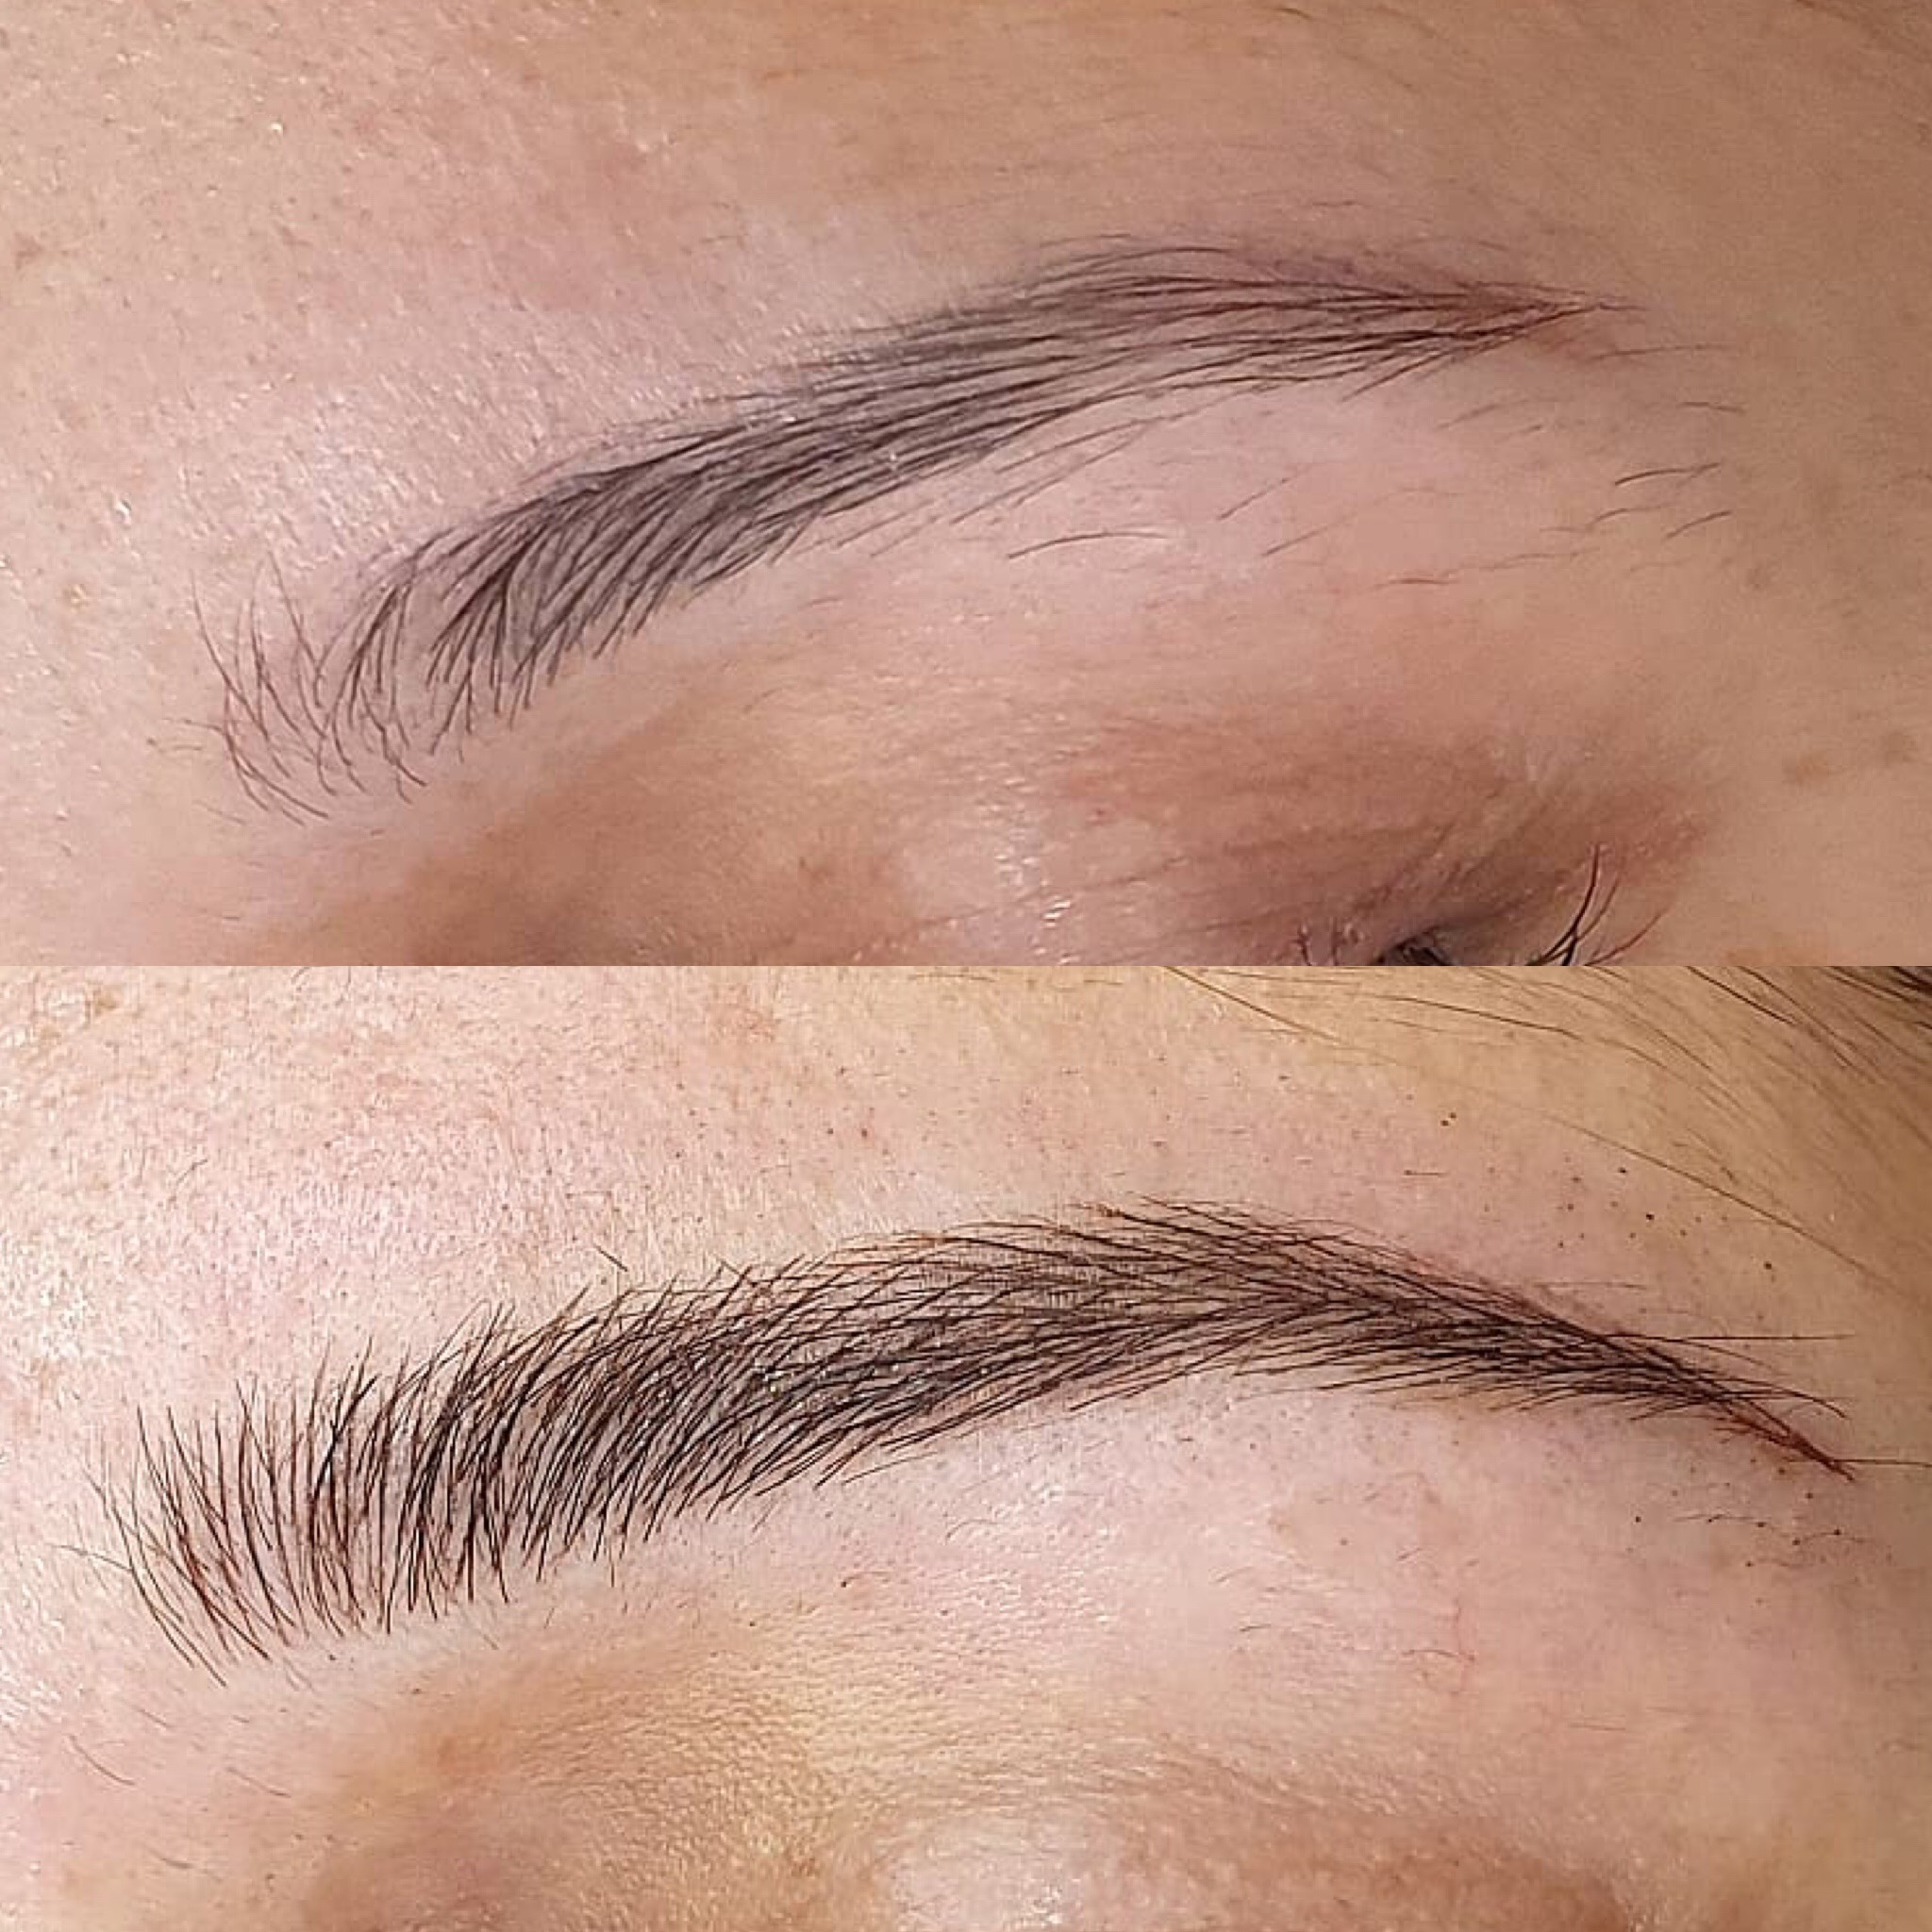 This image shows a woman's eyebrows before Brau and after Brau.